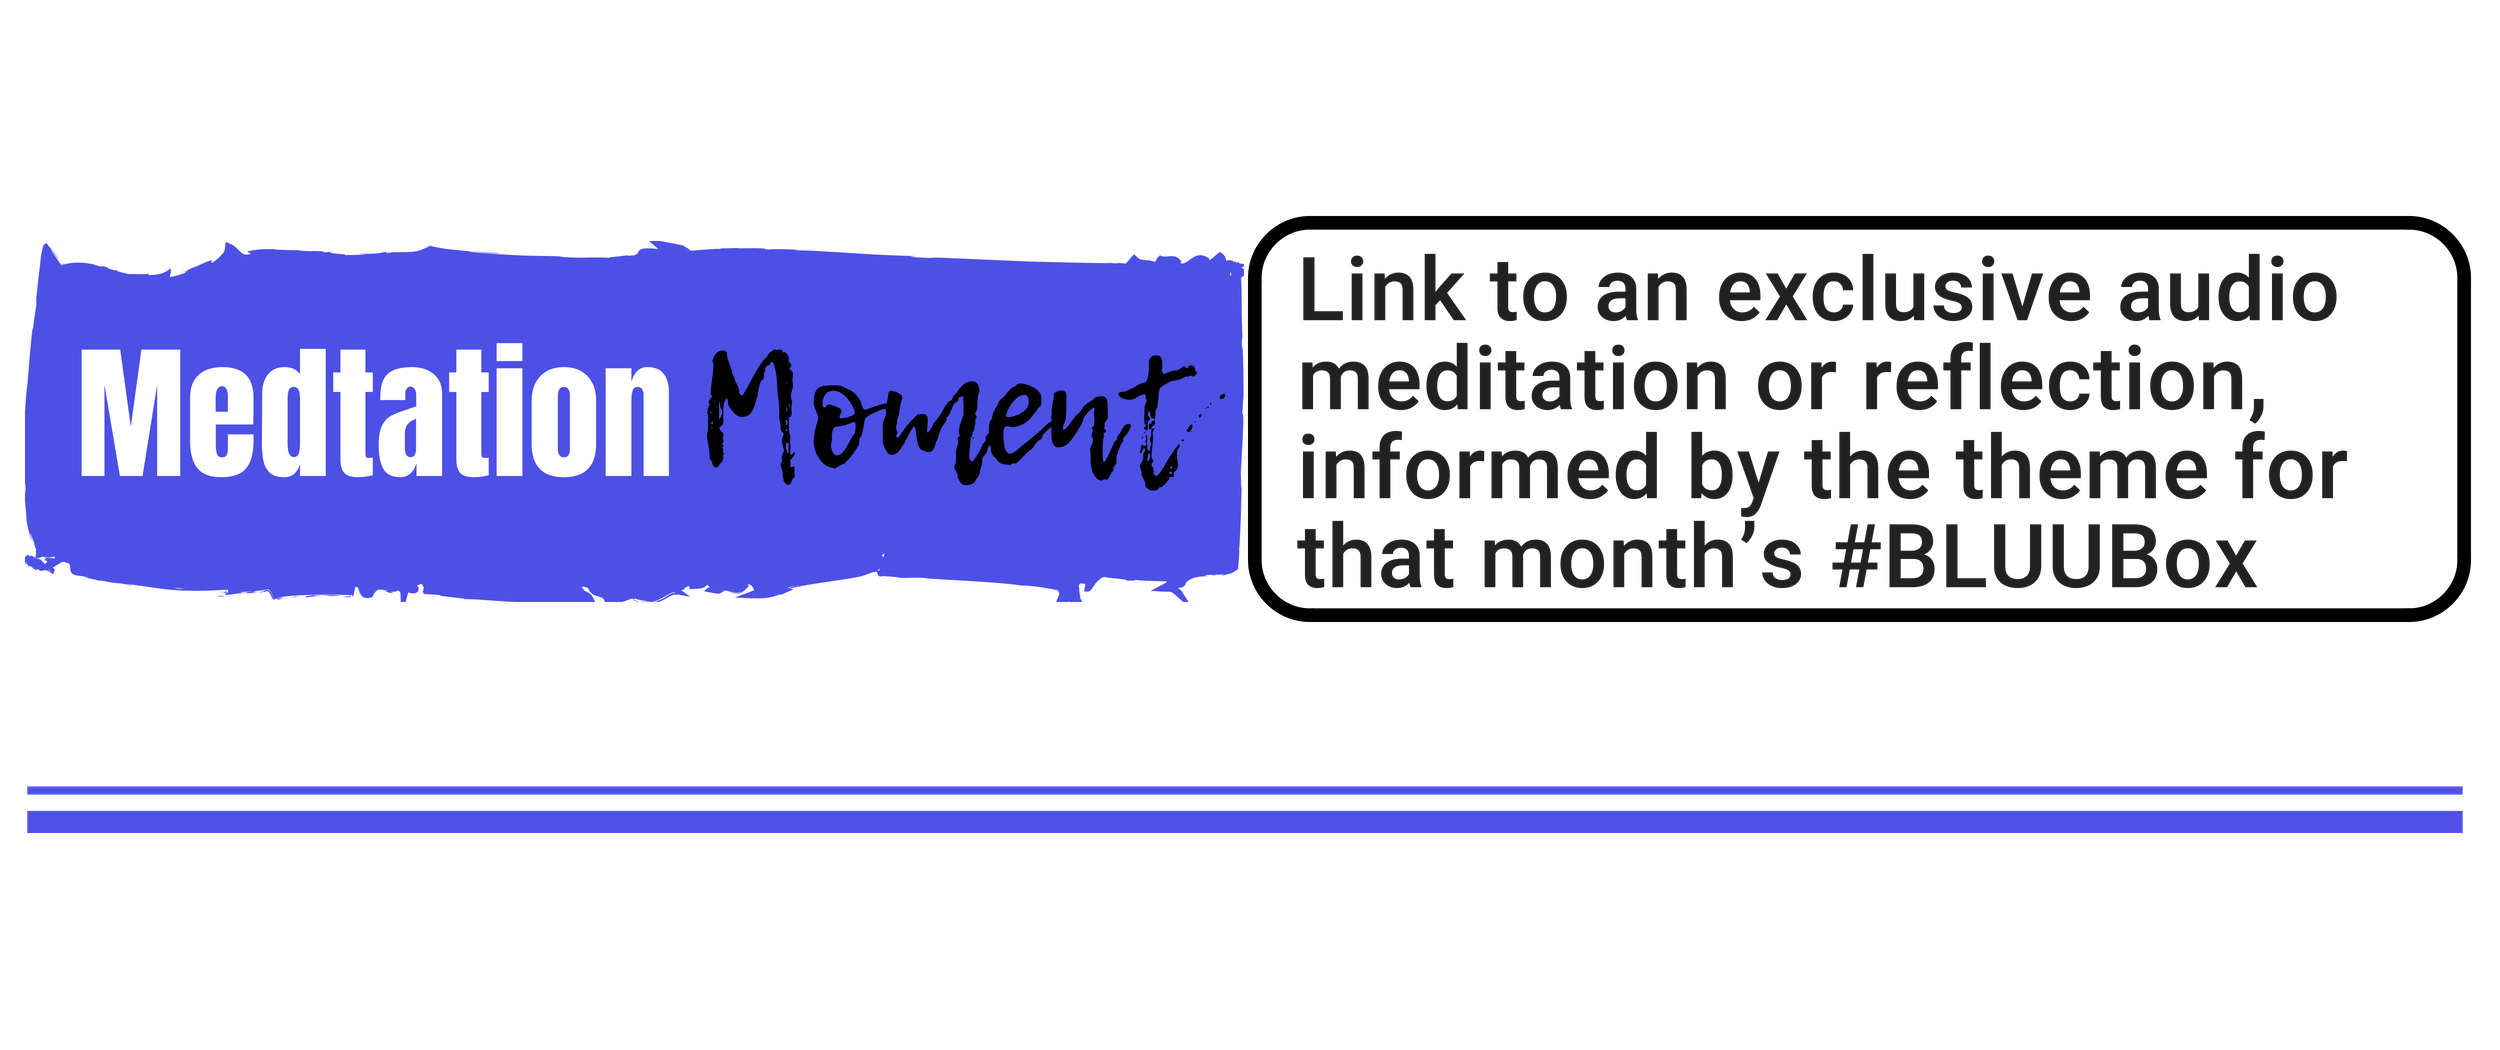 """Meditation Moment:""   Link to an exclusive audio meditation or reflection, informed by the theme for that month's #BLUUBox"